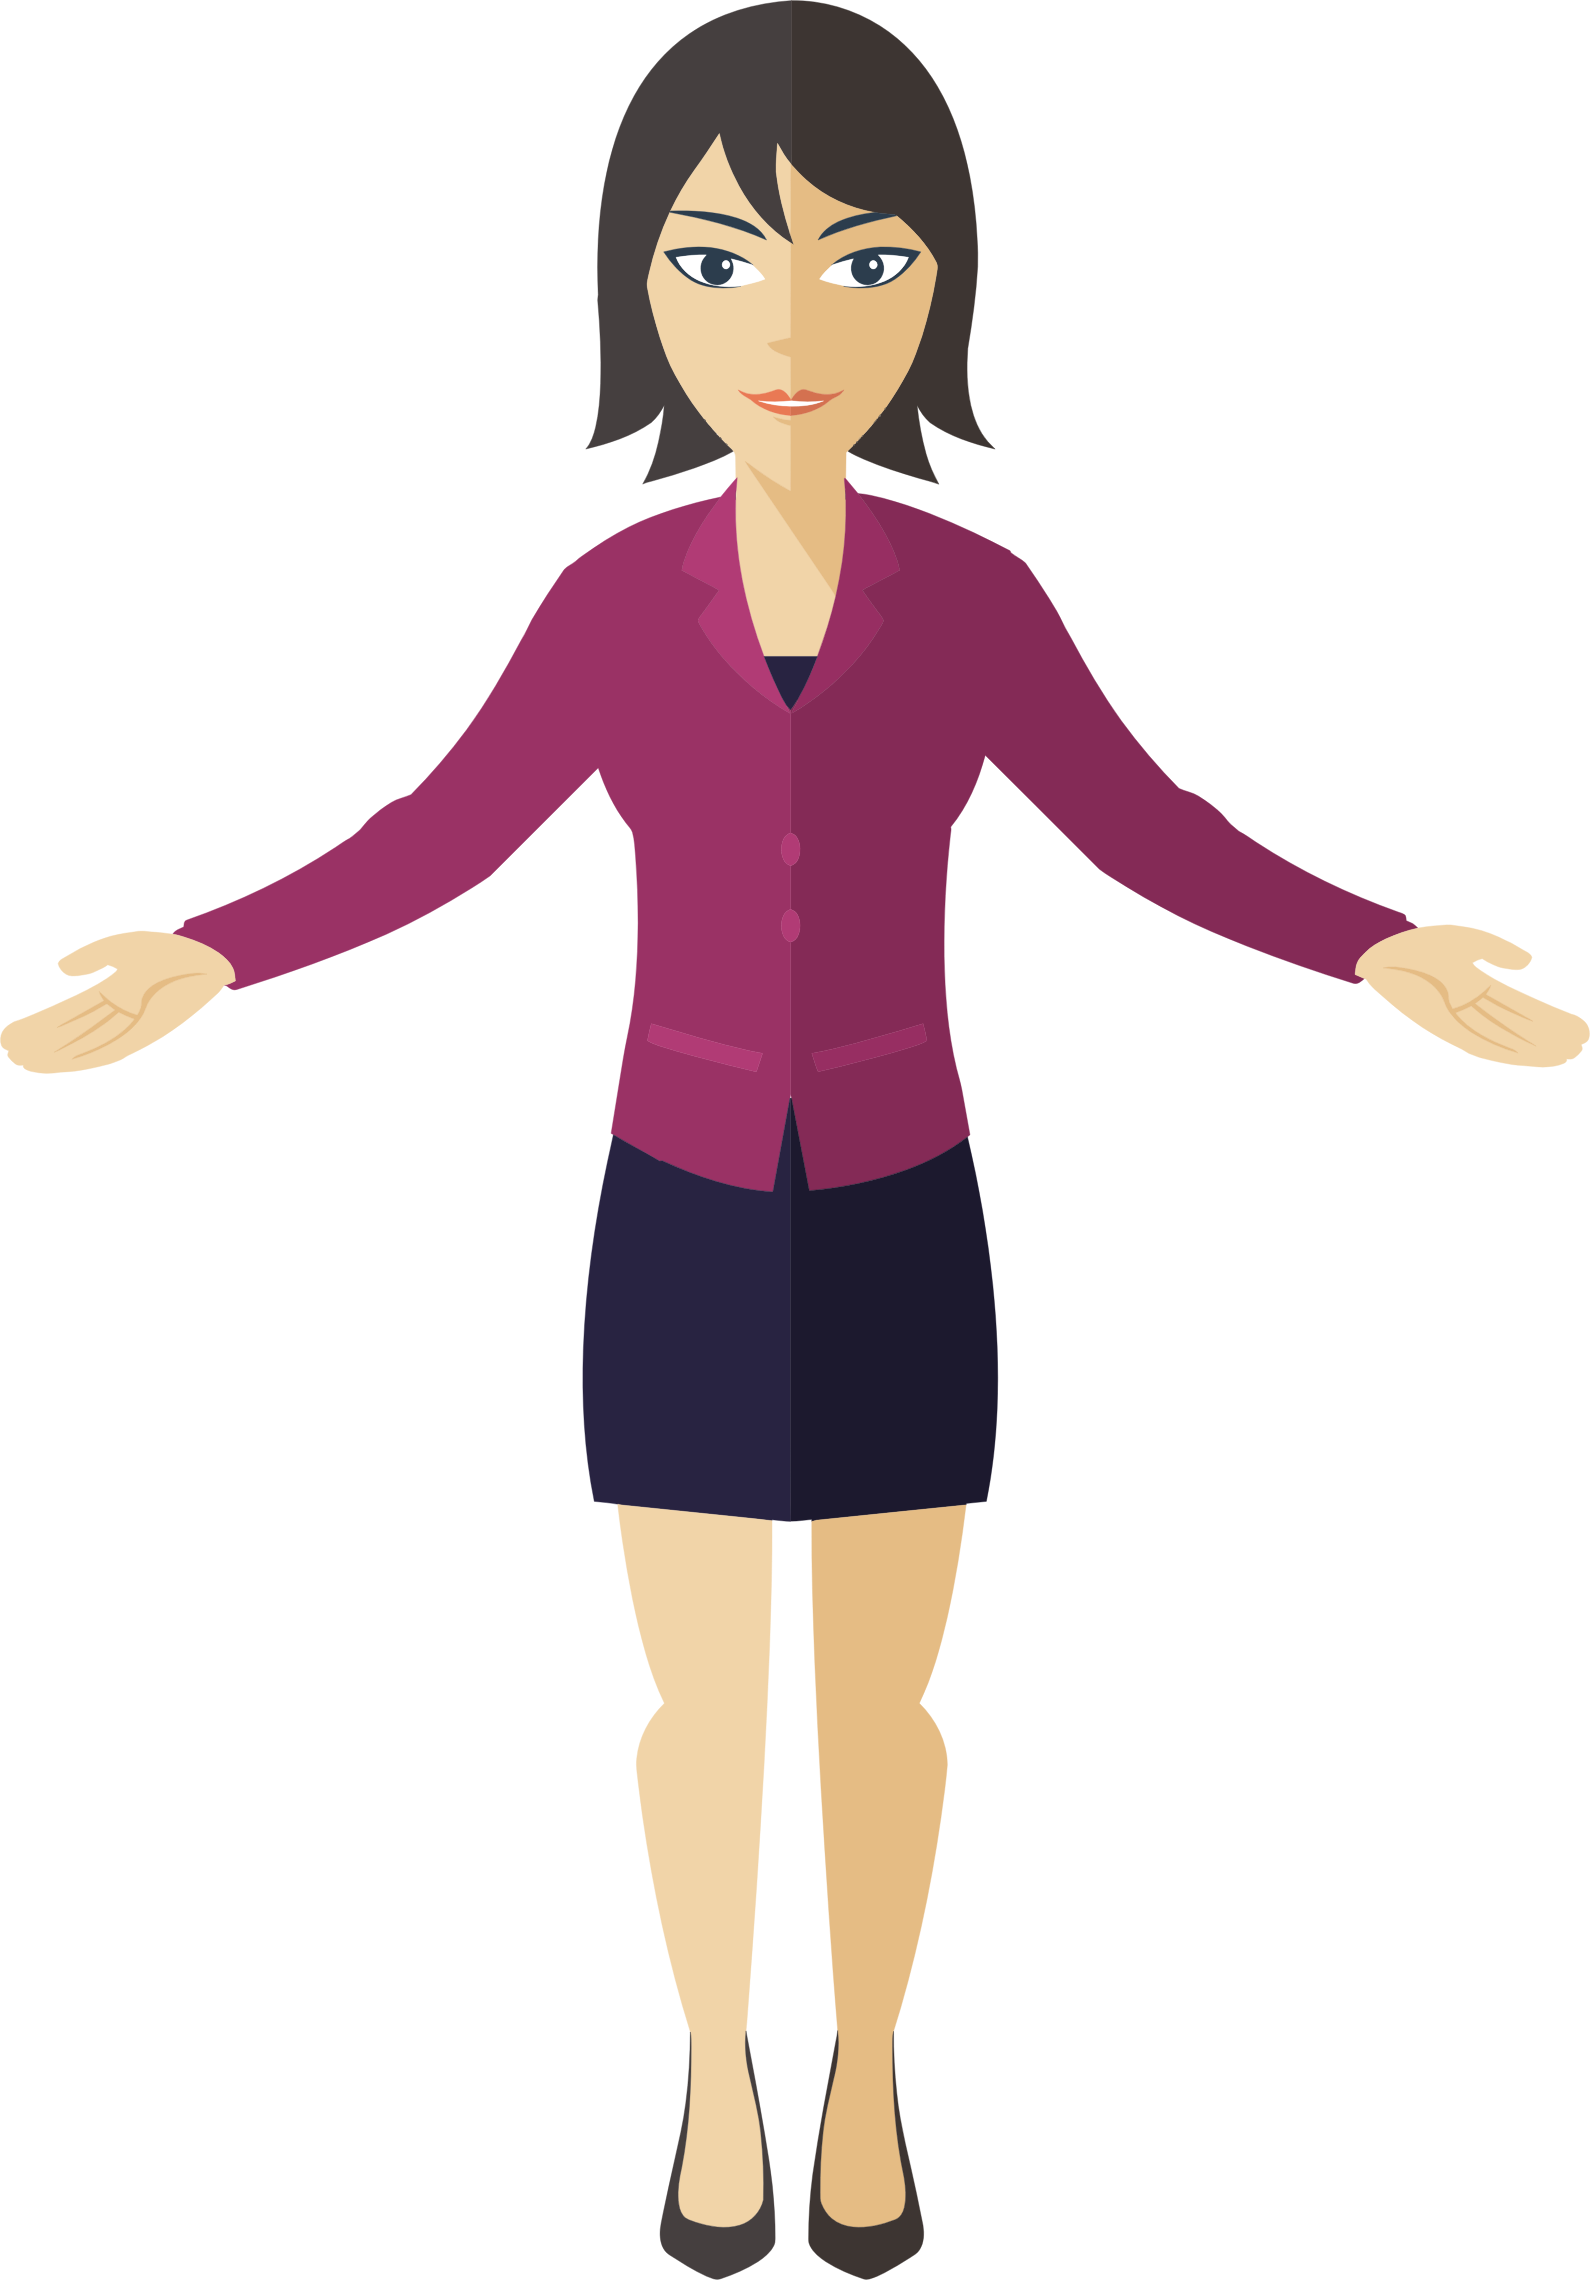 Woman cartoon png. Flat shaded business icons